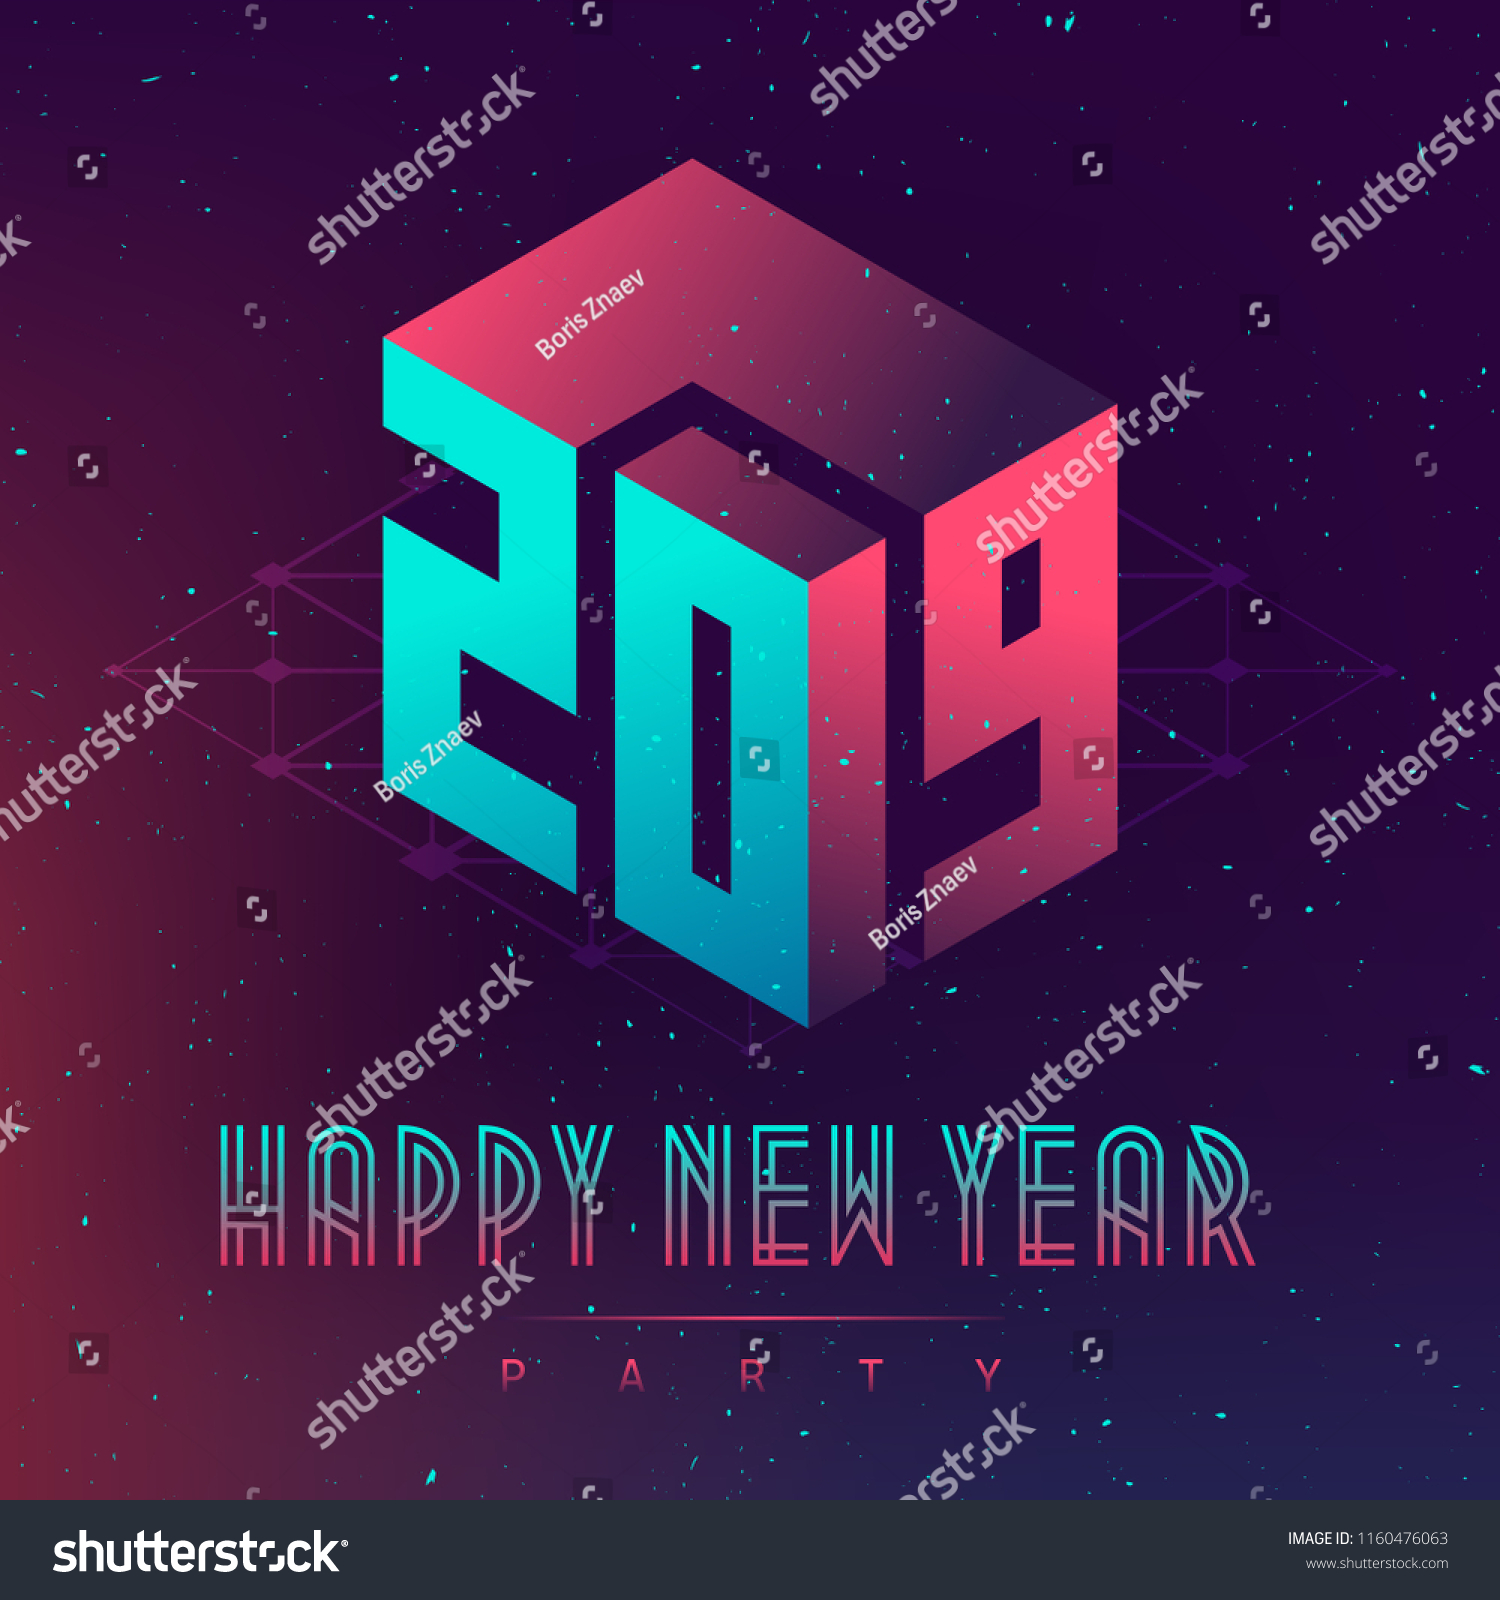 Music for the New Year 2019 34